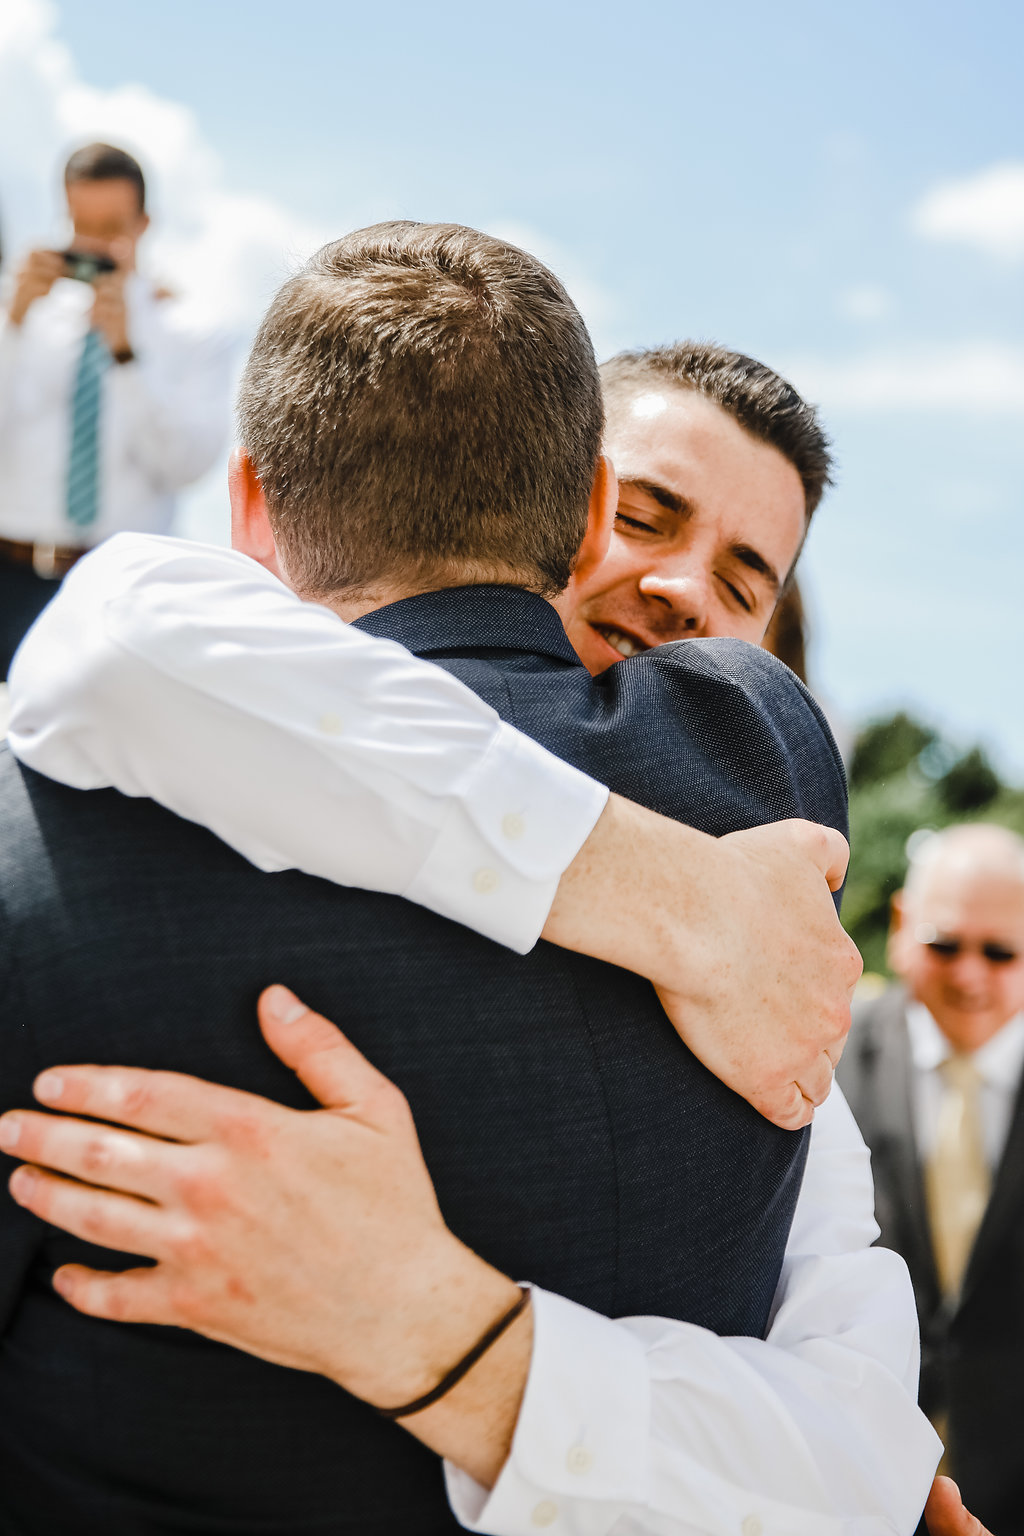 best professional wedding photographer in brigham city utah lds temple groom embrace wedding day photography